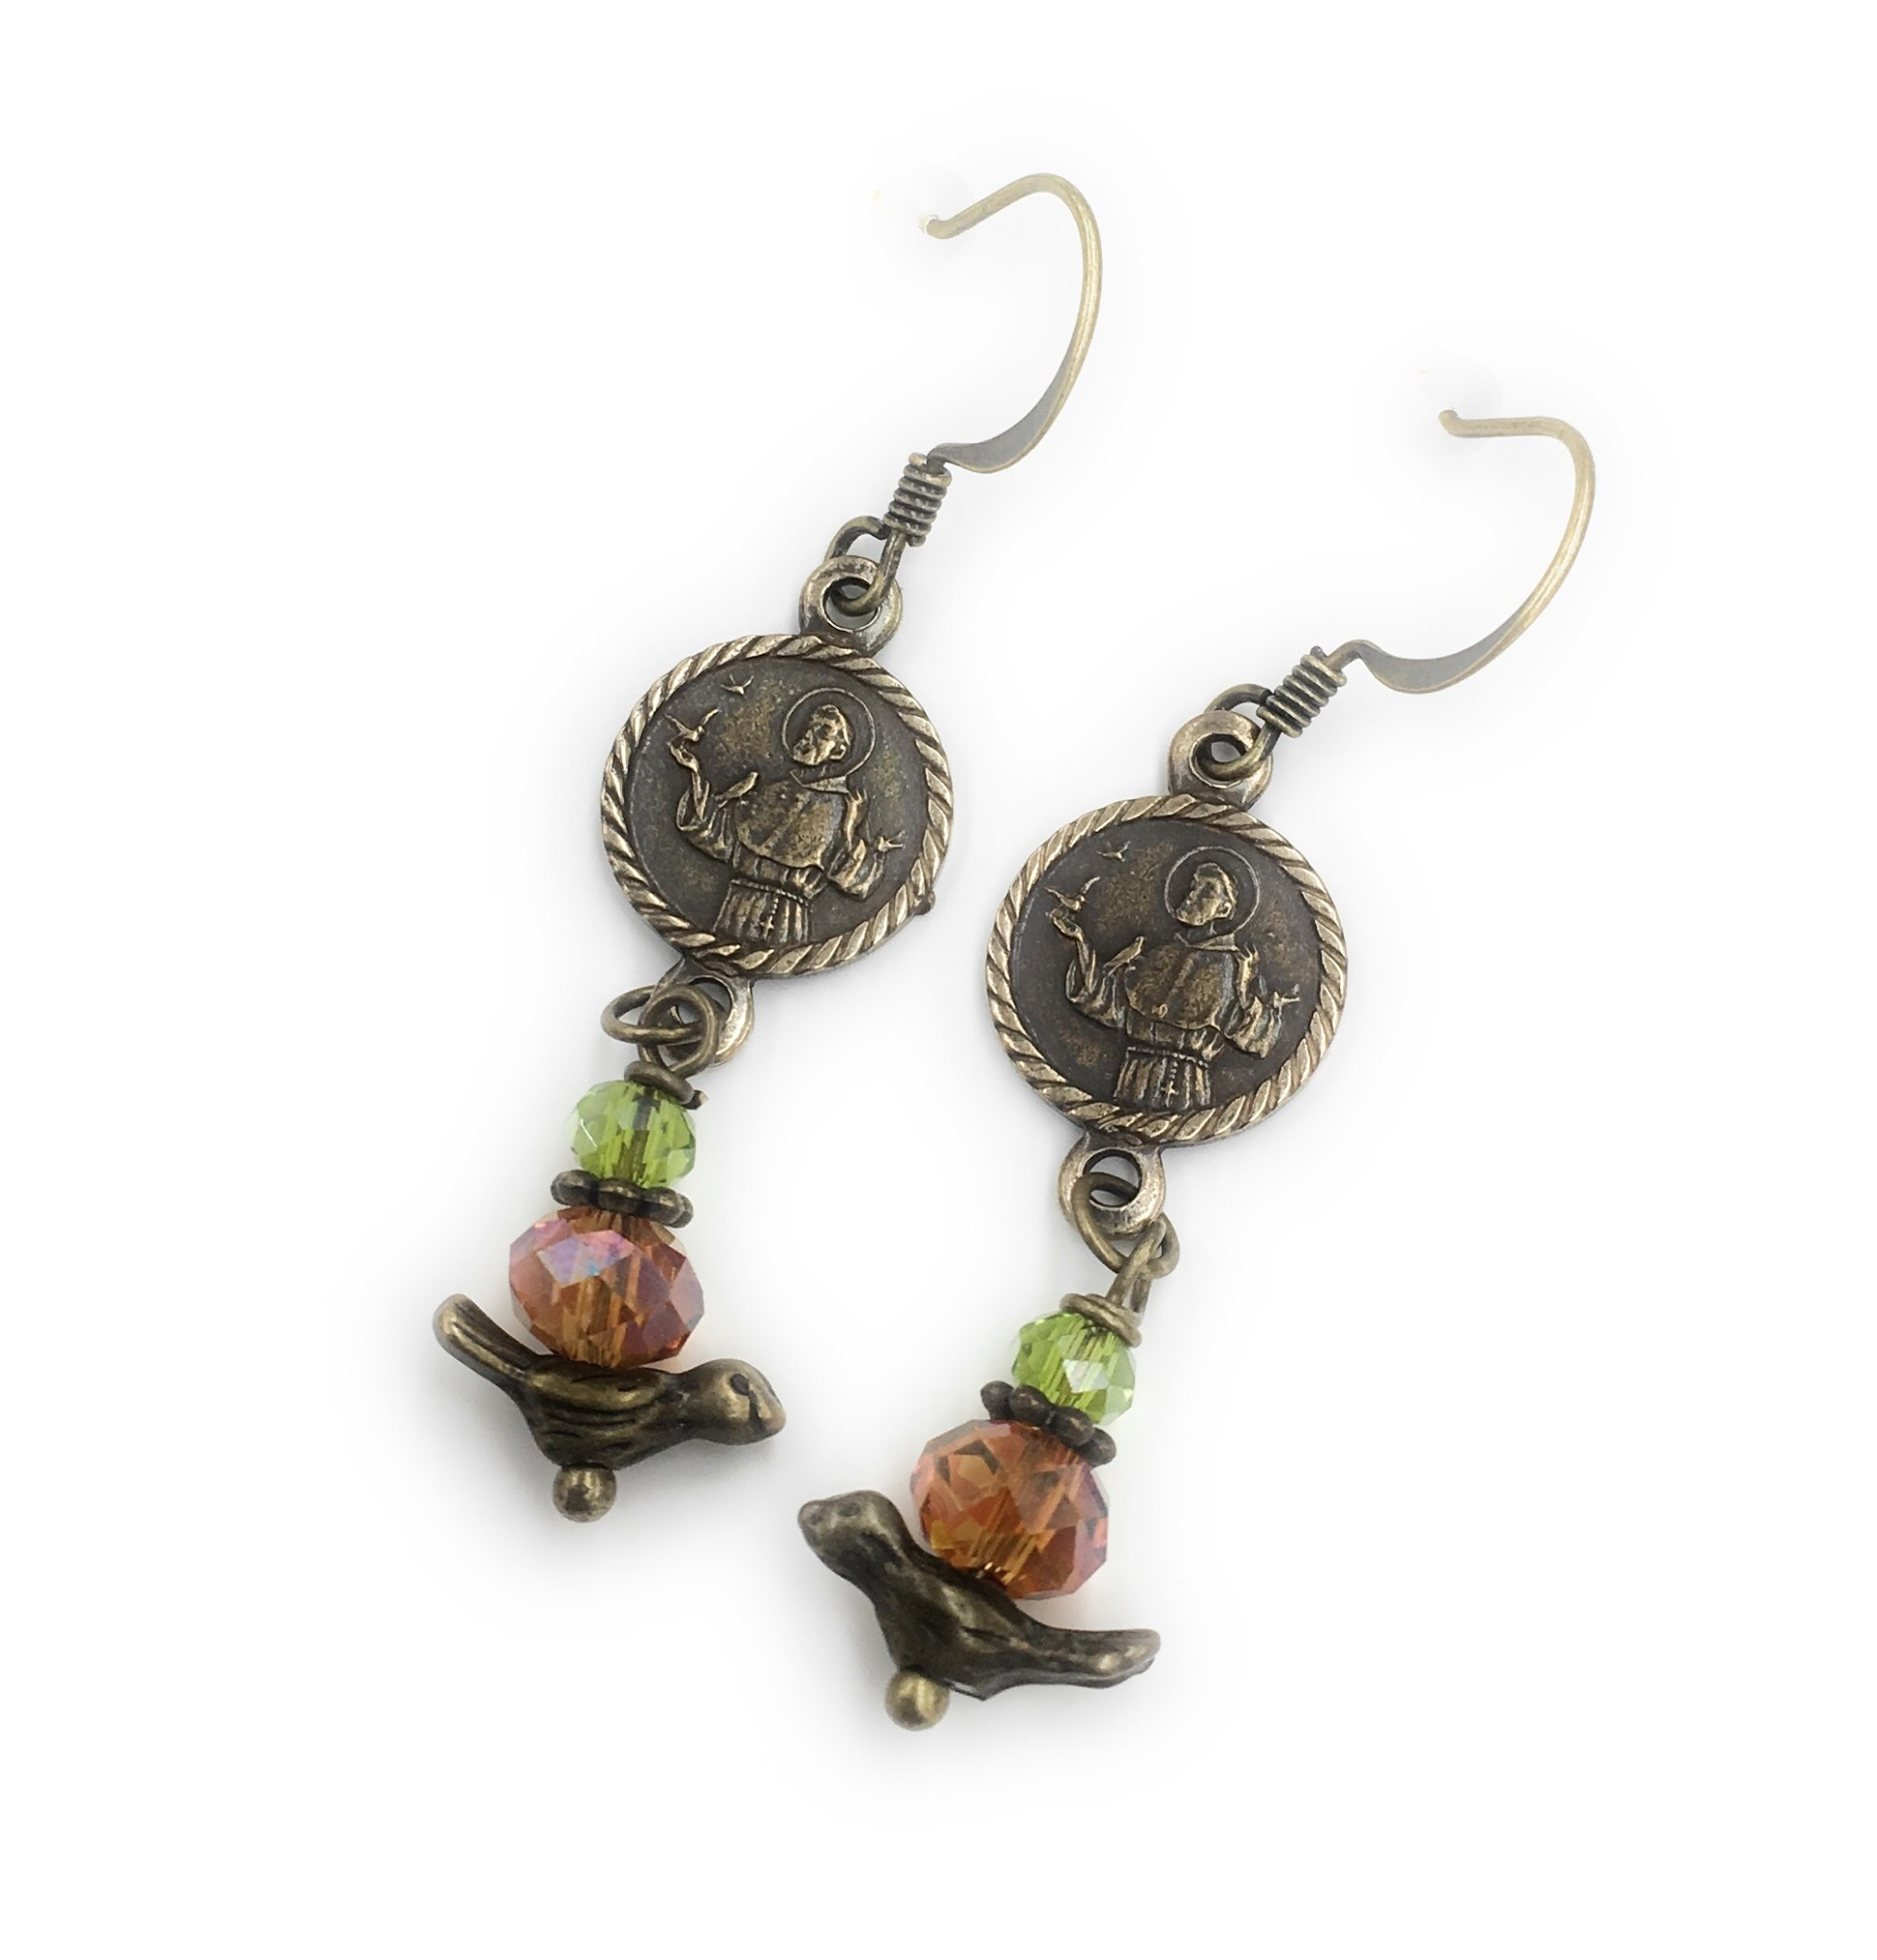 Gail's Design Vintage St. Francis Earrings